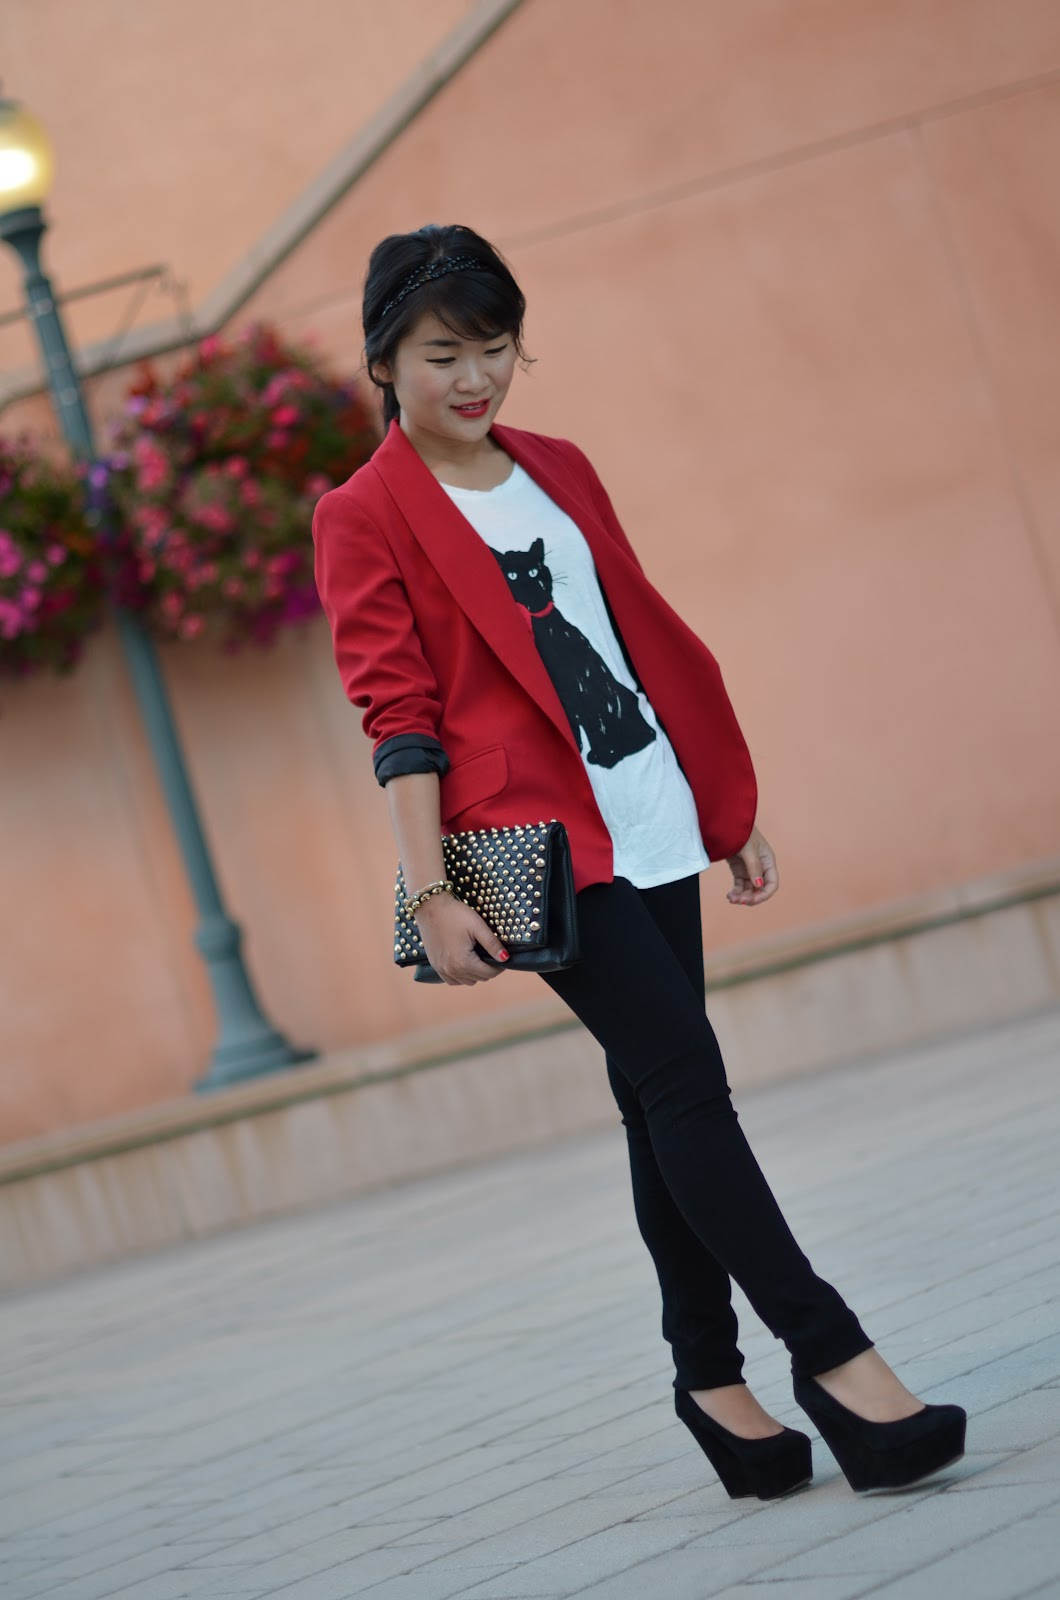 forever 21 red blazer, jason wu for target cat shirt, jason wu for target milu shirt, jason wu for target black cat, citizens of humanity black skinny stretch leggings axle wash, citizens of humanity black stretch jeans, citizens of humanity axle wash, sam edelman quinn, forever 21 black studded clutch